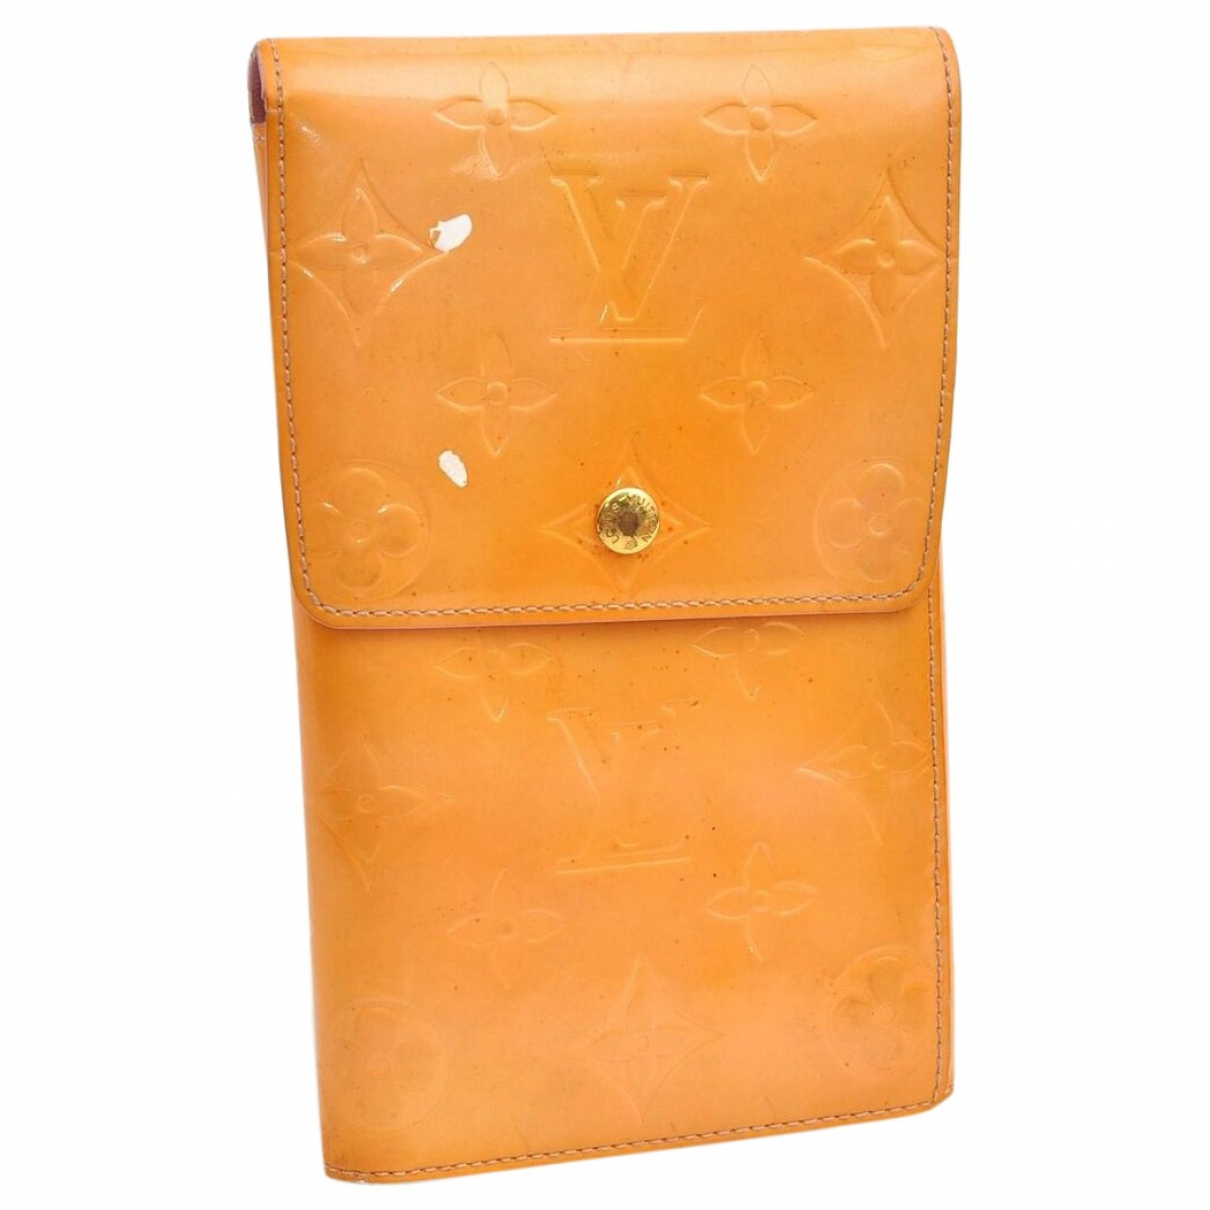 Louis Vuitton \N Yellow Patent leather wallet for Women \N